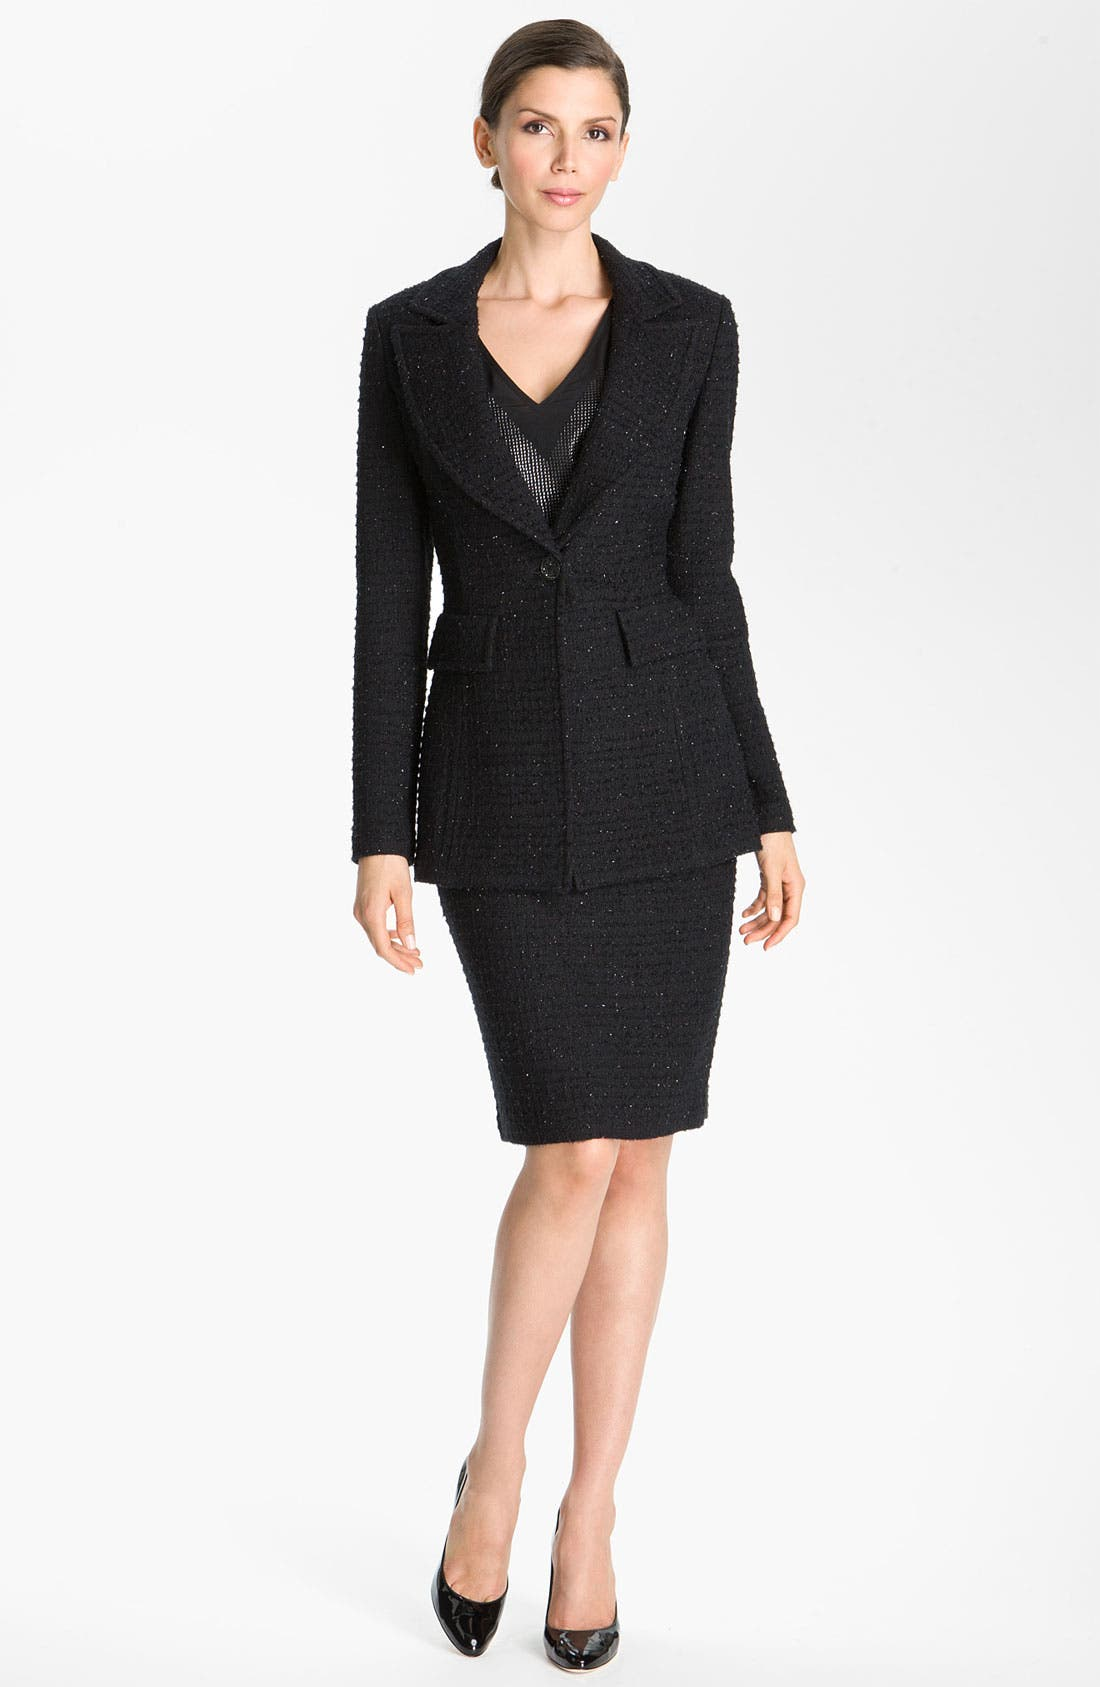 Main Image - St. John Collection Textured Shimmer Knit Jacket